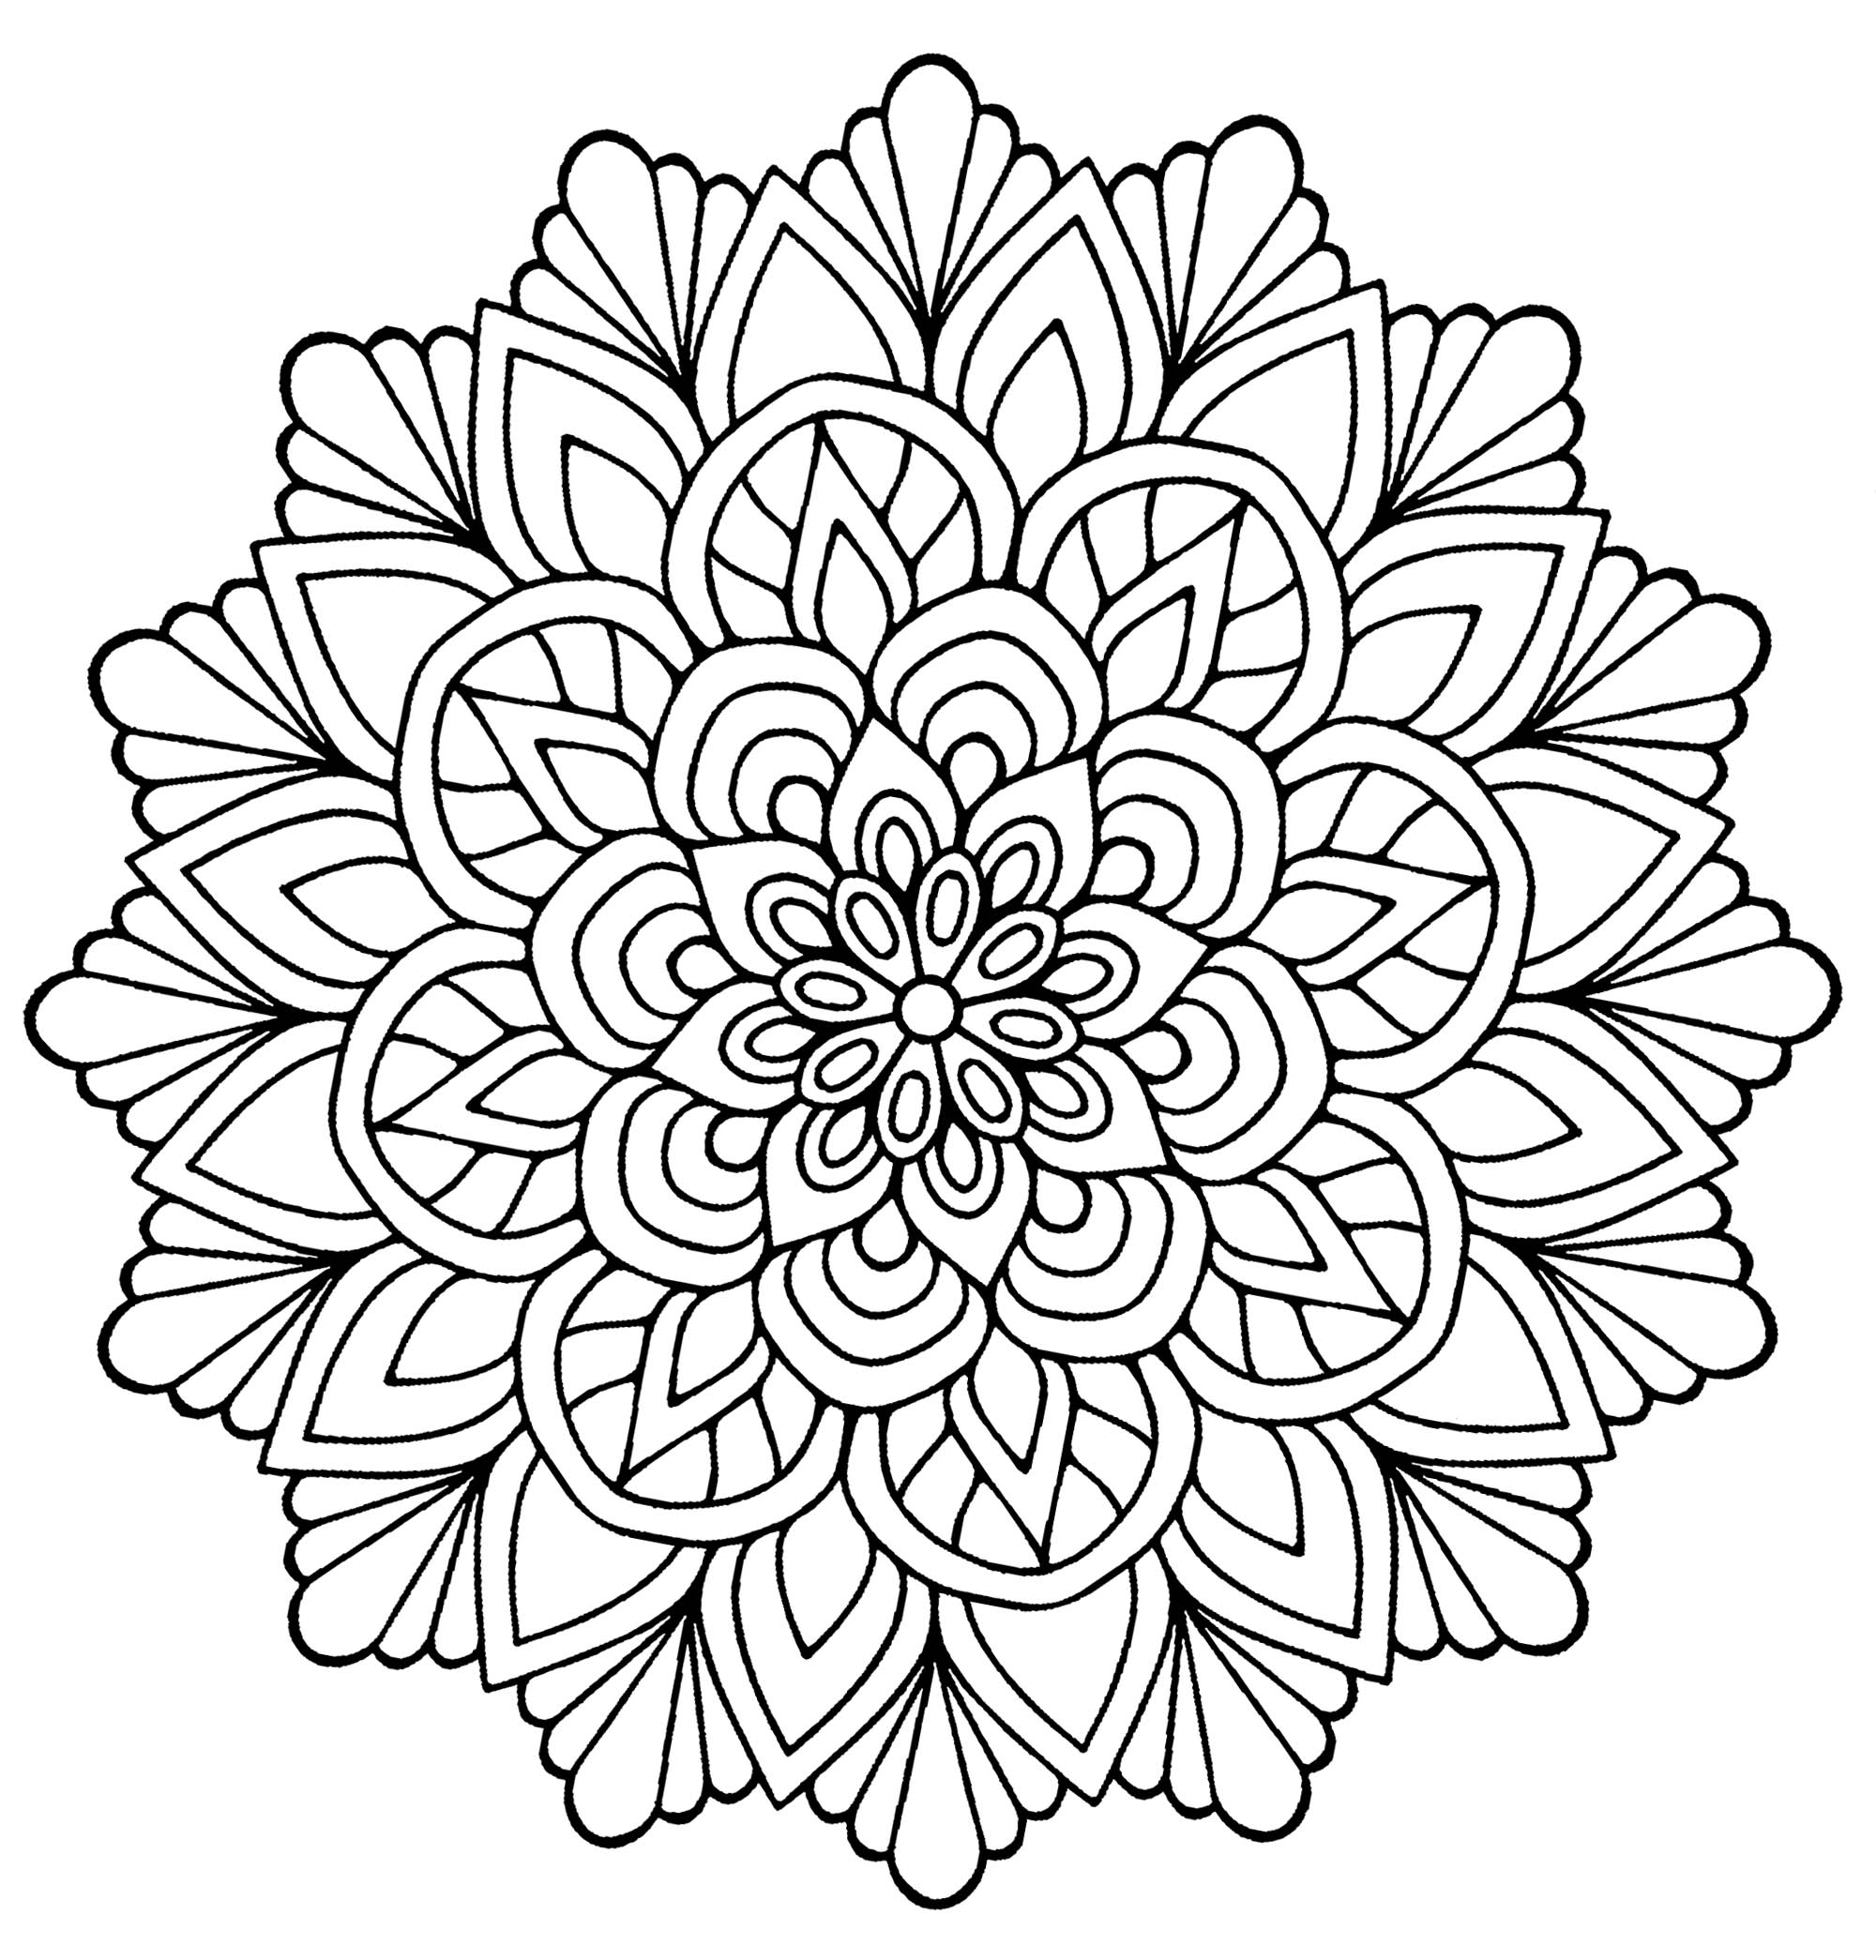 Mandala flower with leaves M alas Adult Coloring Pages